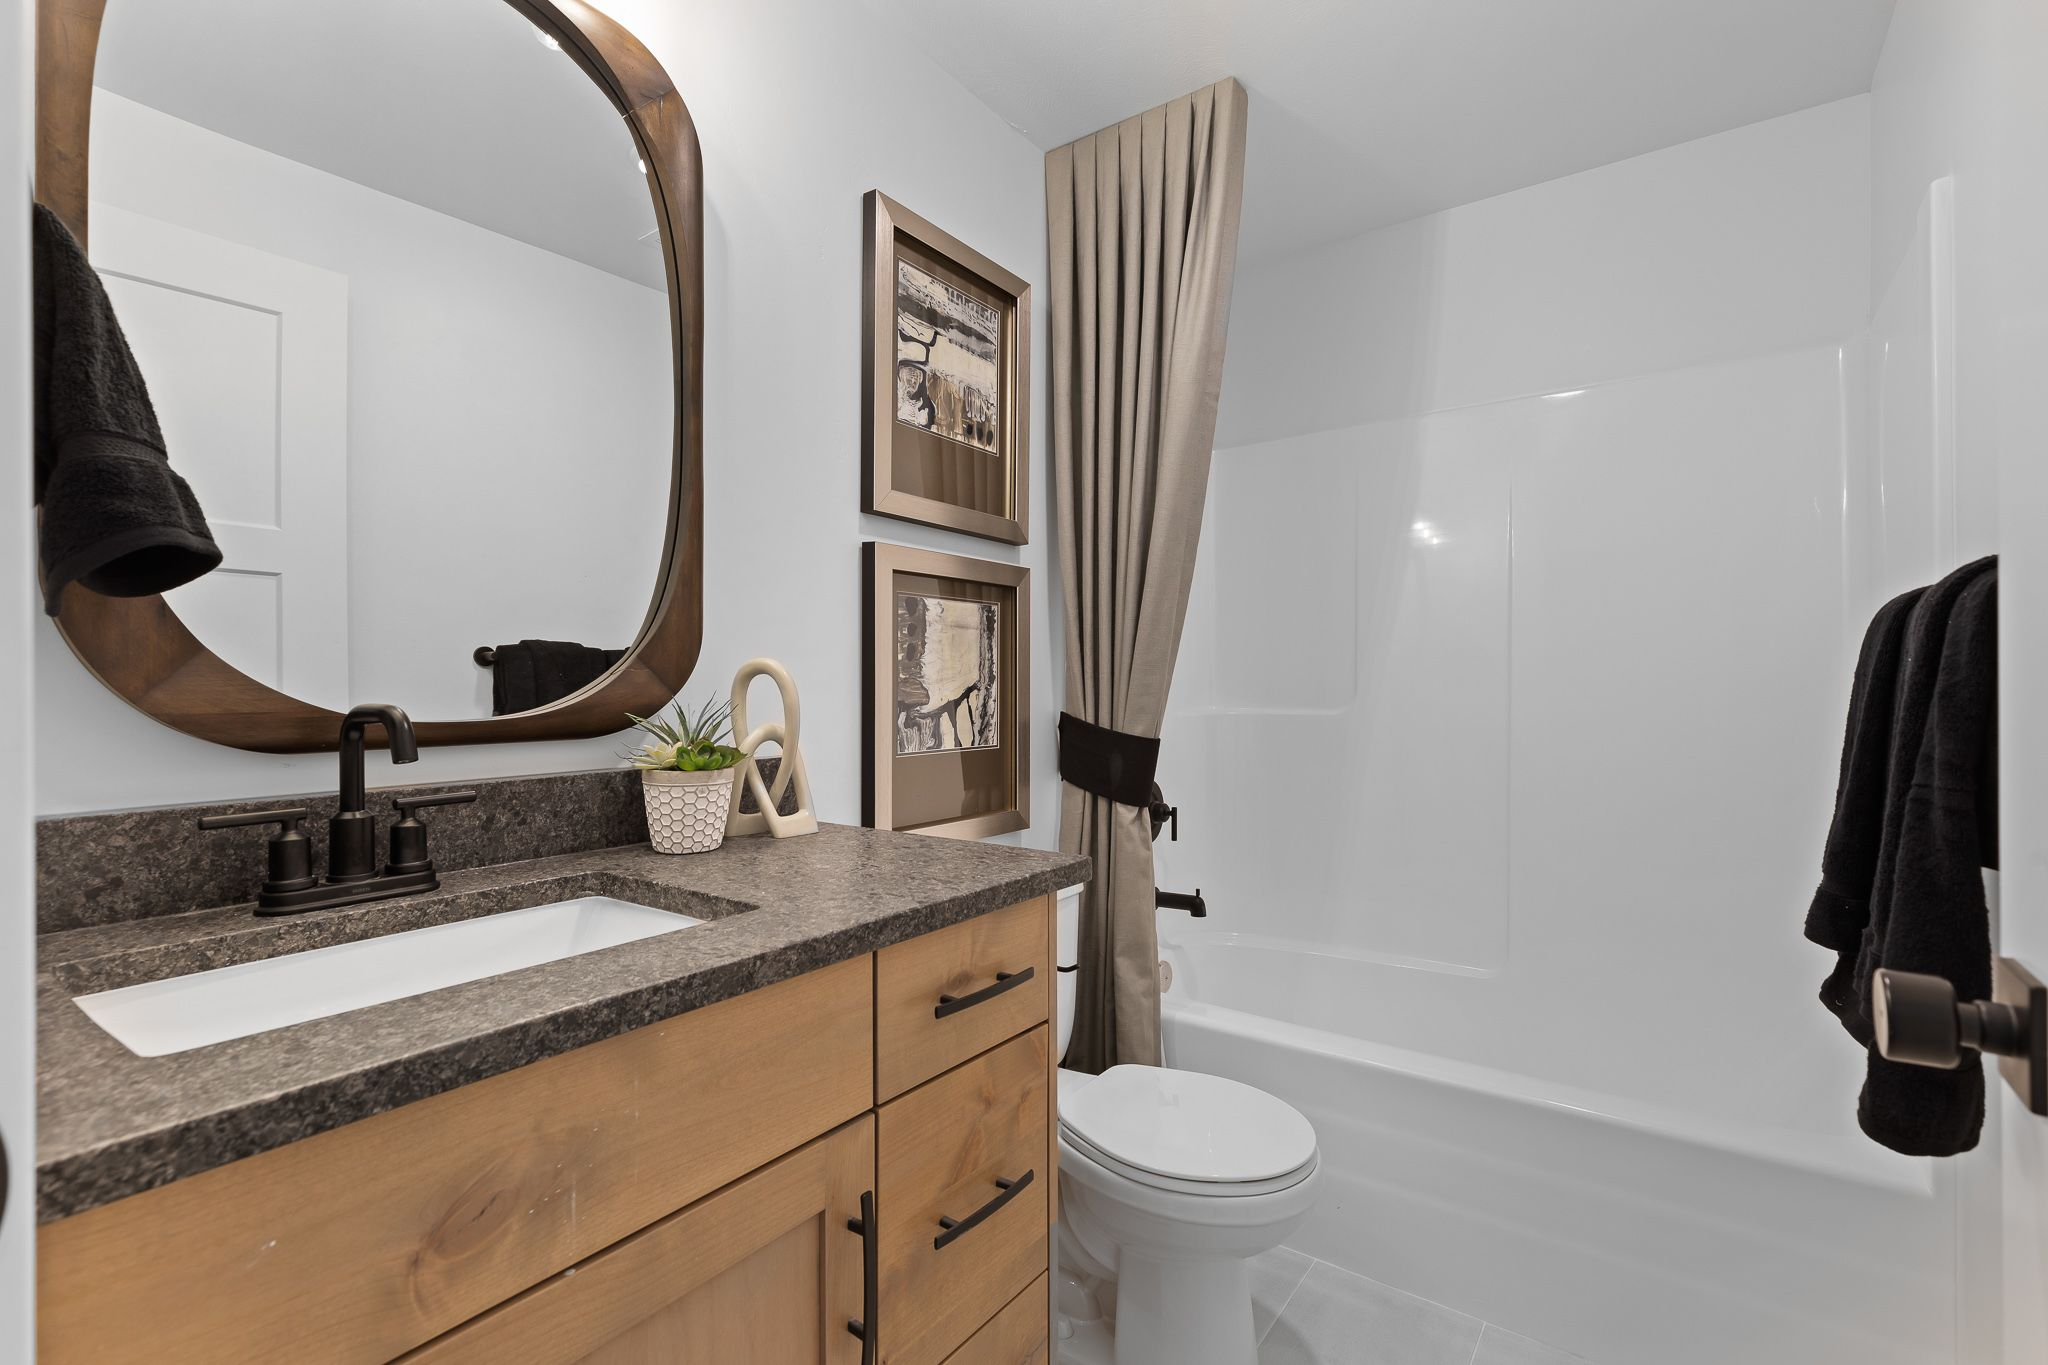 Bathroom featured in the Madison (SOG) By Visionary Homes in Logan, UT